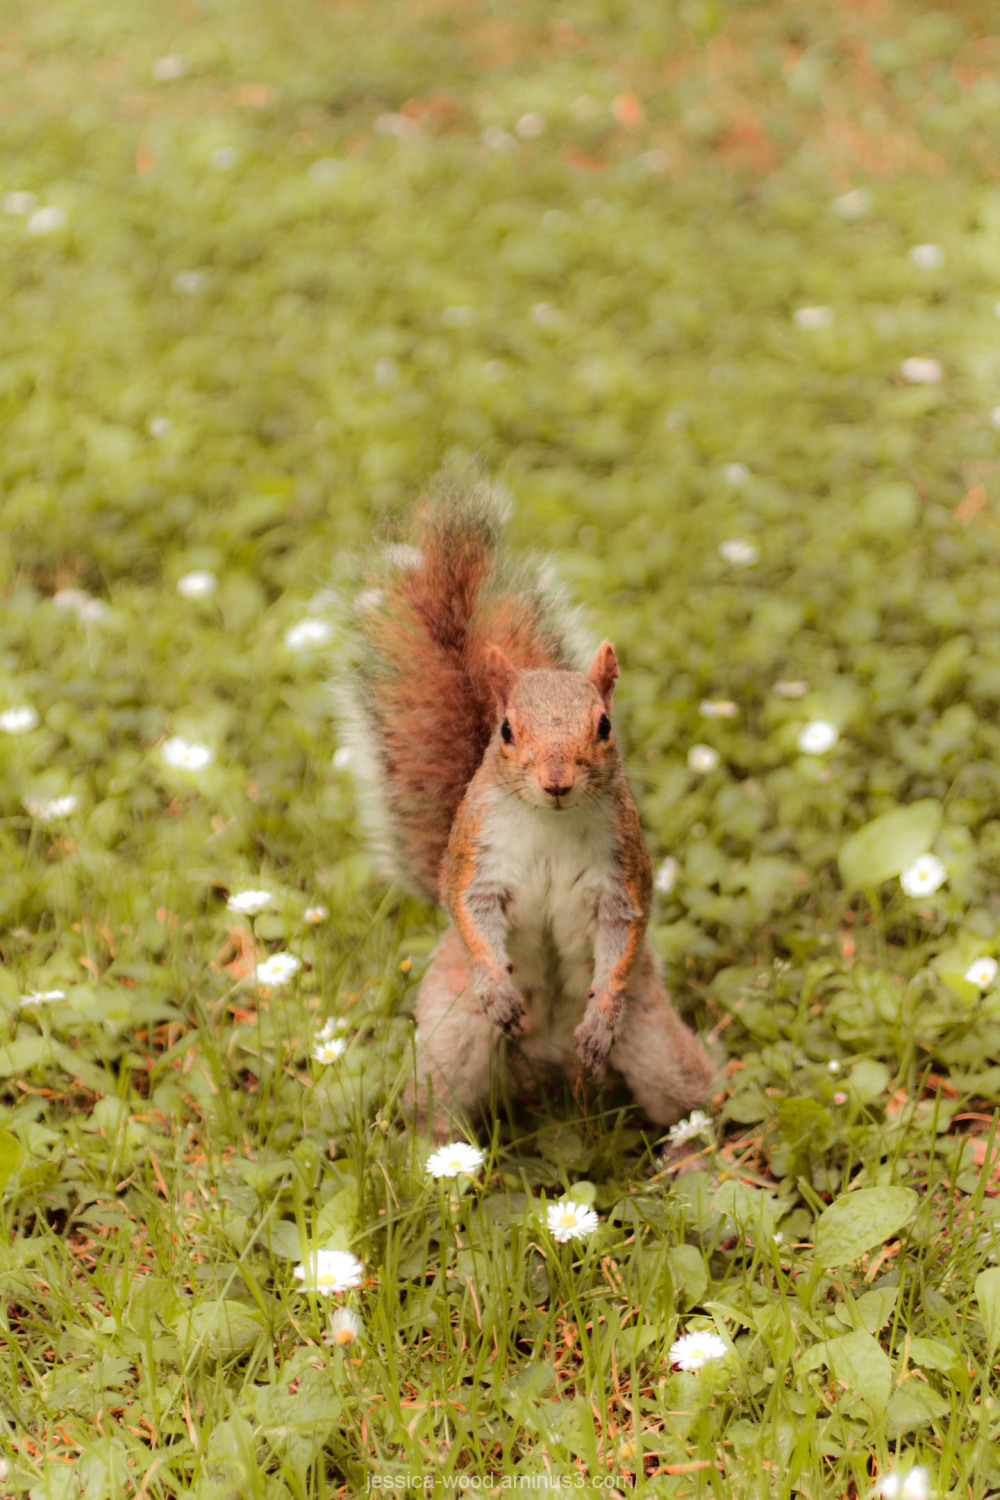 A squirrel poses for a camera in BC